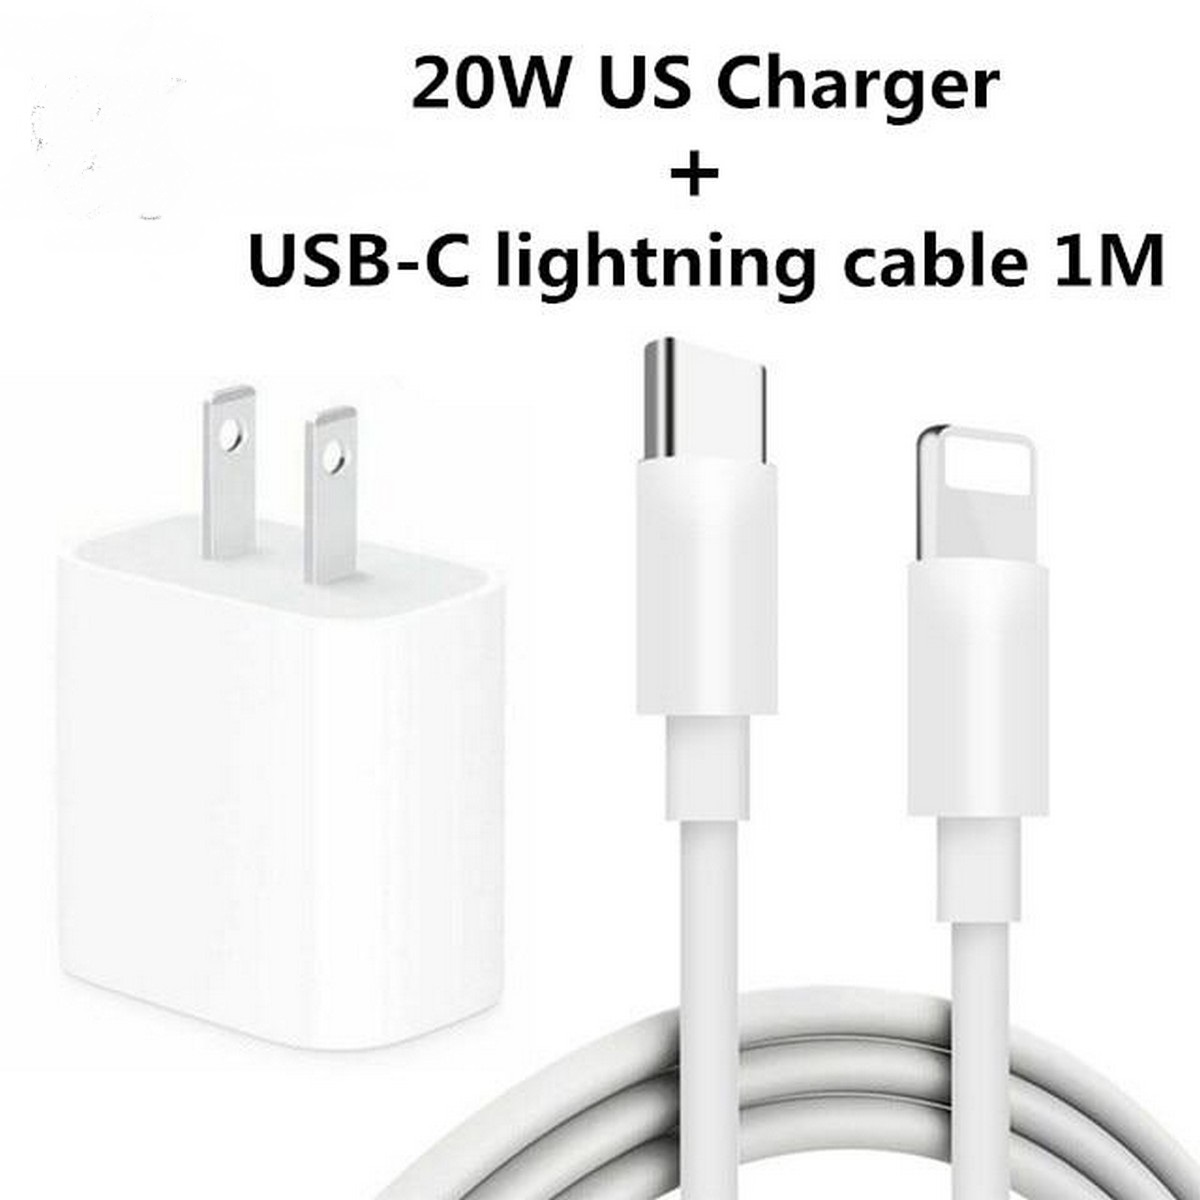 20w Pd Usb C Charger For Iphone 12 Pro Max 11 Xs Xr Fast Charger Type C Qc 3.0 Quick Charging Mobile Phone Charger